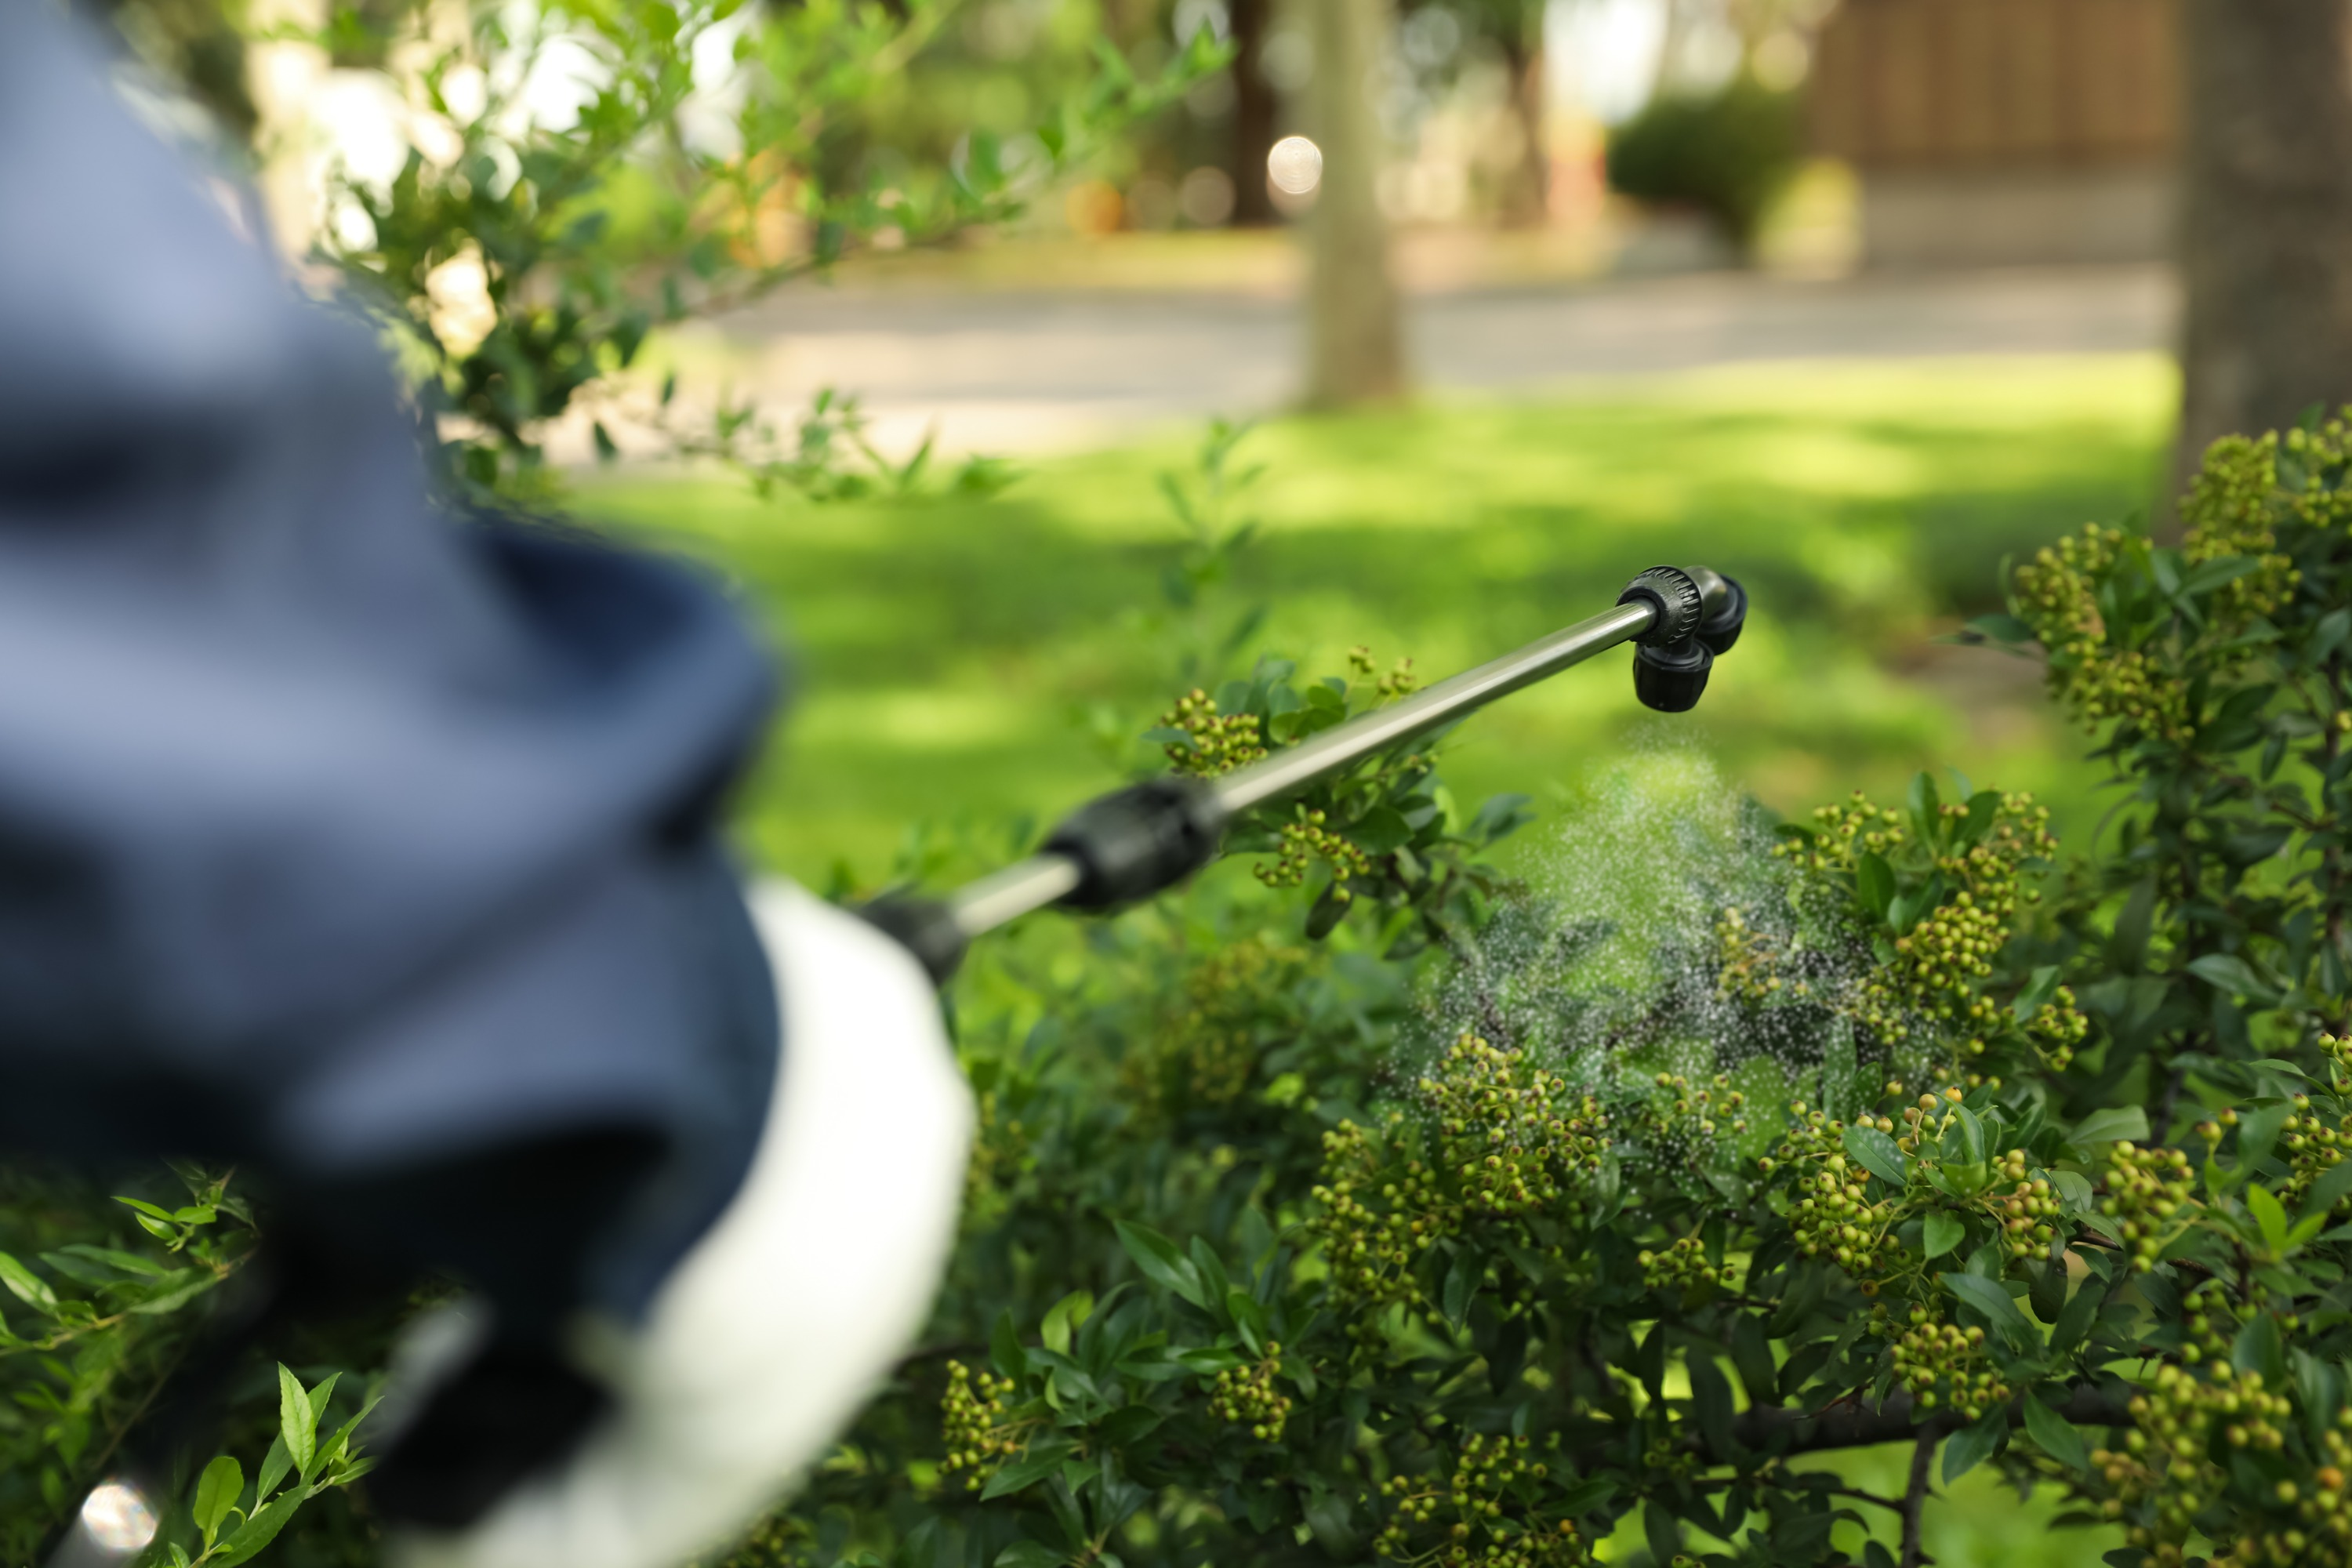 A pest control specialist wearing a navy blue shirt and white gloves uses a black wand to spray pest control solution onto green bushes.